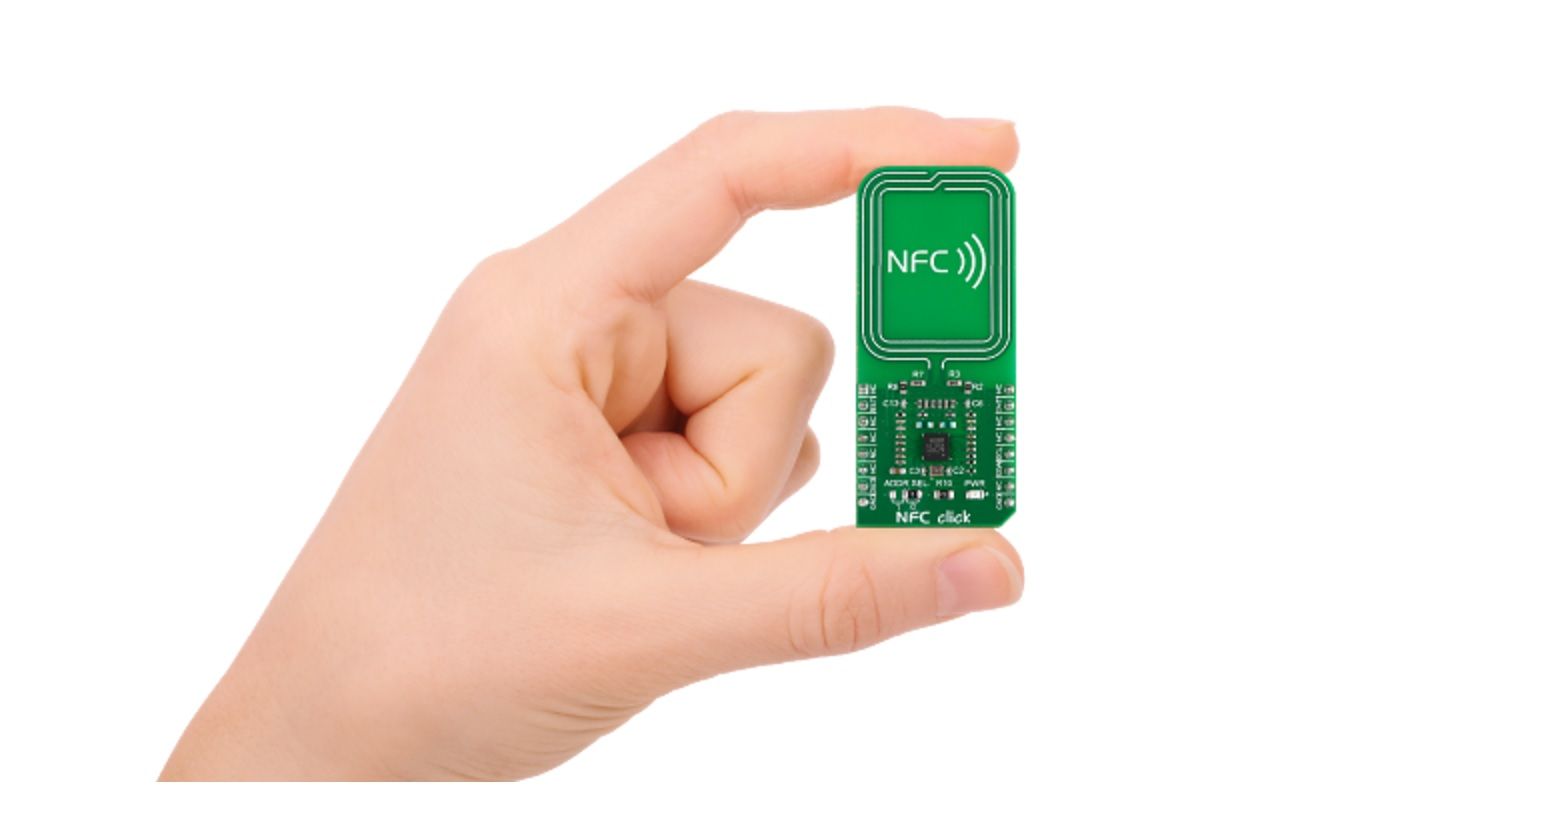 nfc-click-1-hardware-pro